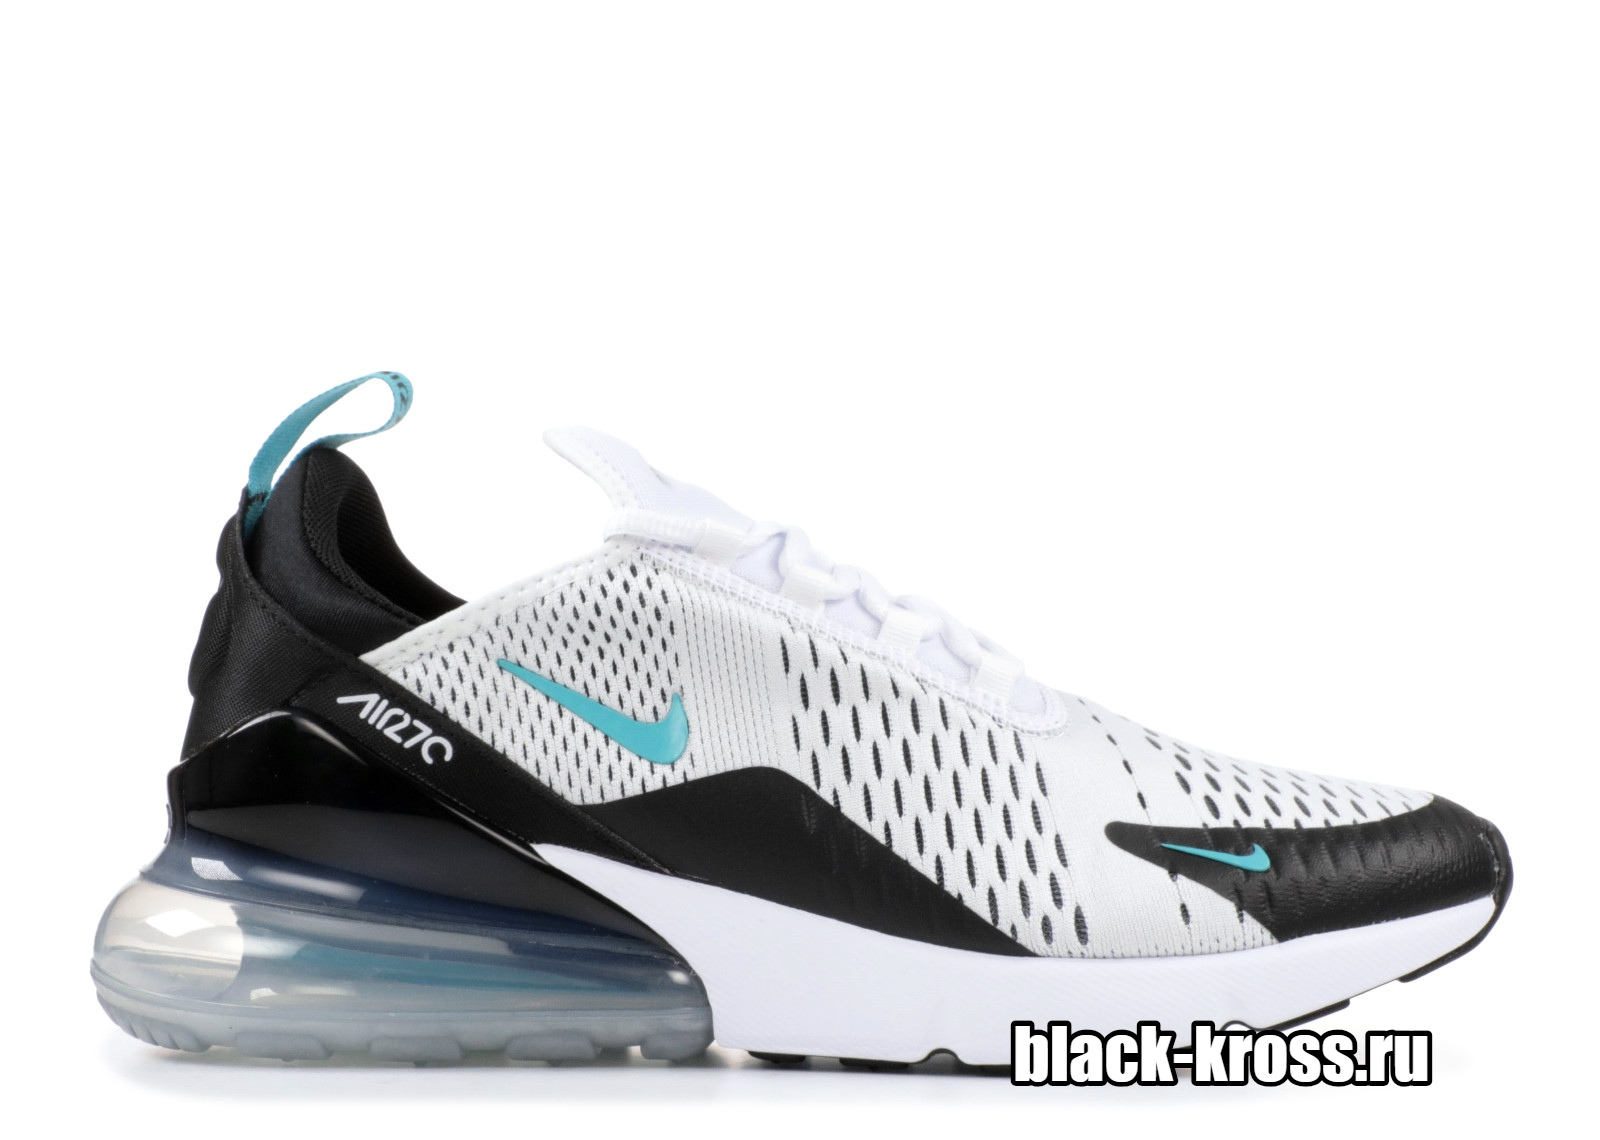 NIKE AIR MAX 270 White & Black (36-45)